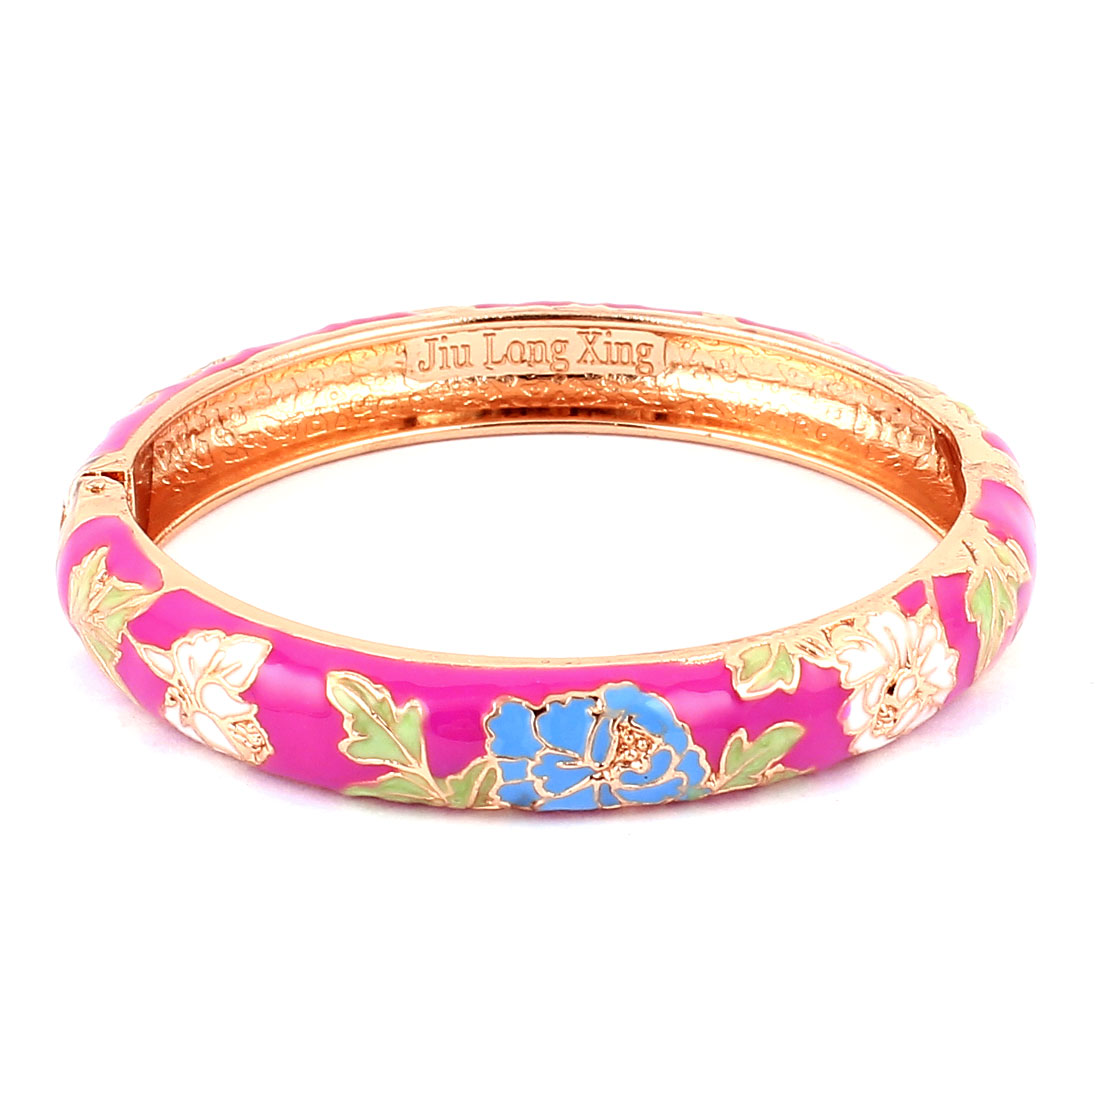 Woman Chinese Style Flower Carved Enamel Wrist Cuff Bracelet Bangle Fuchsia